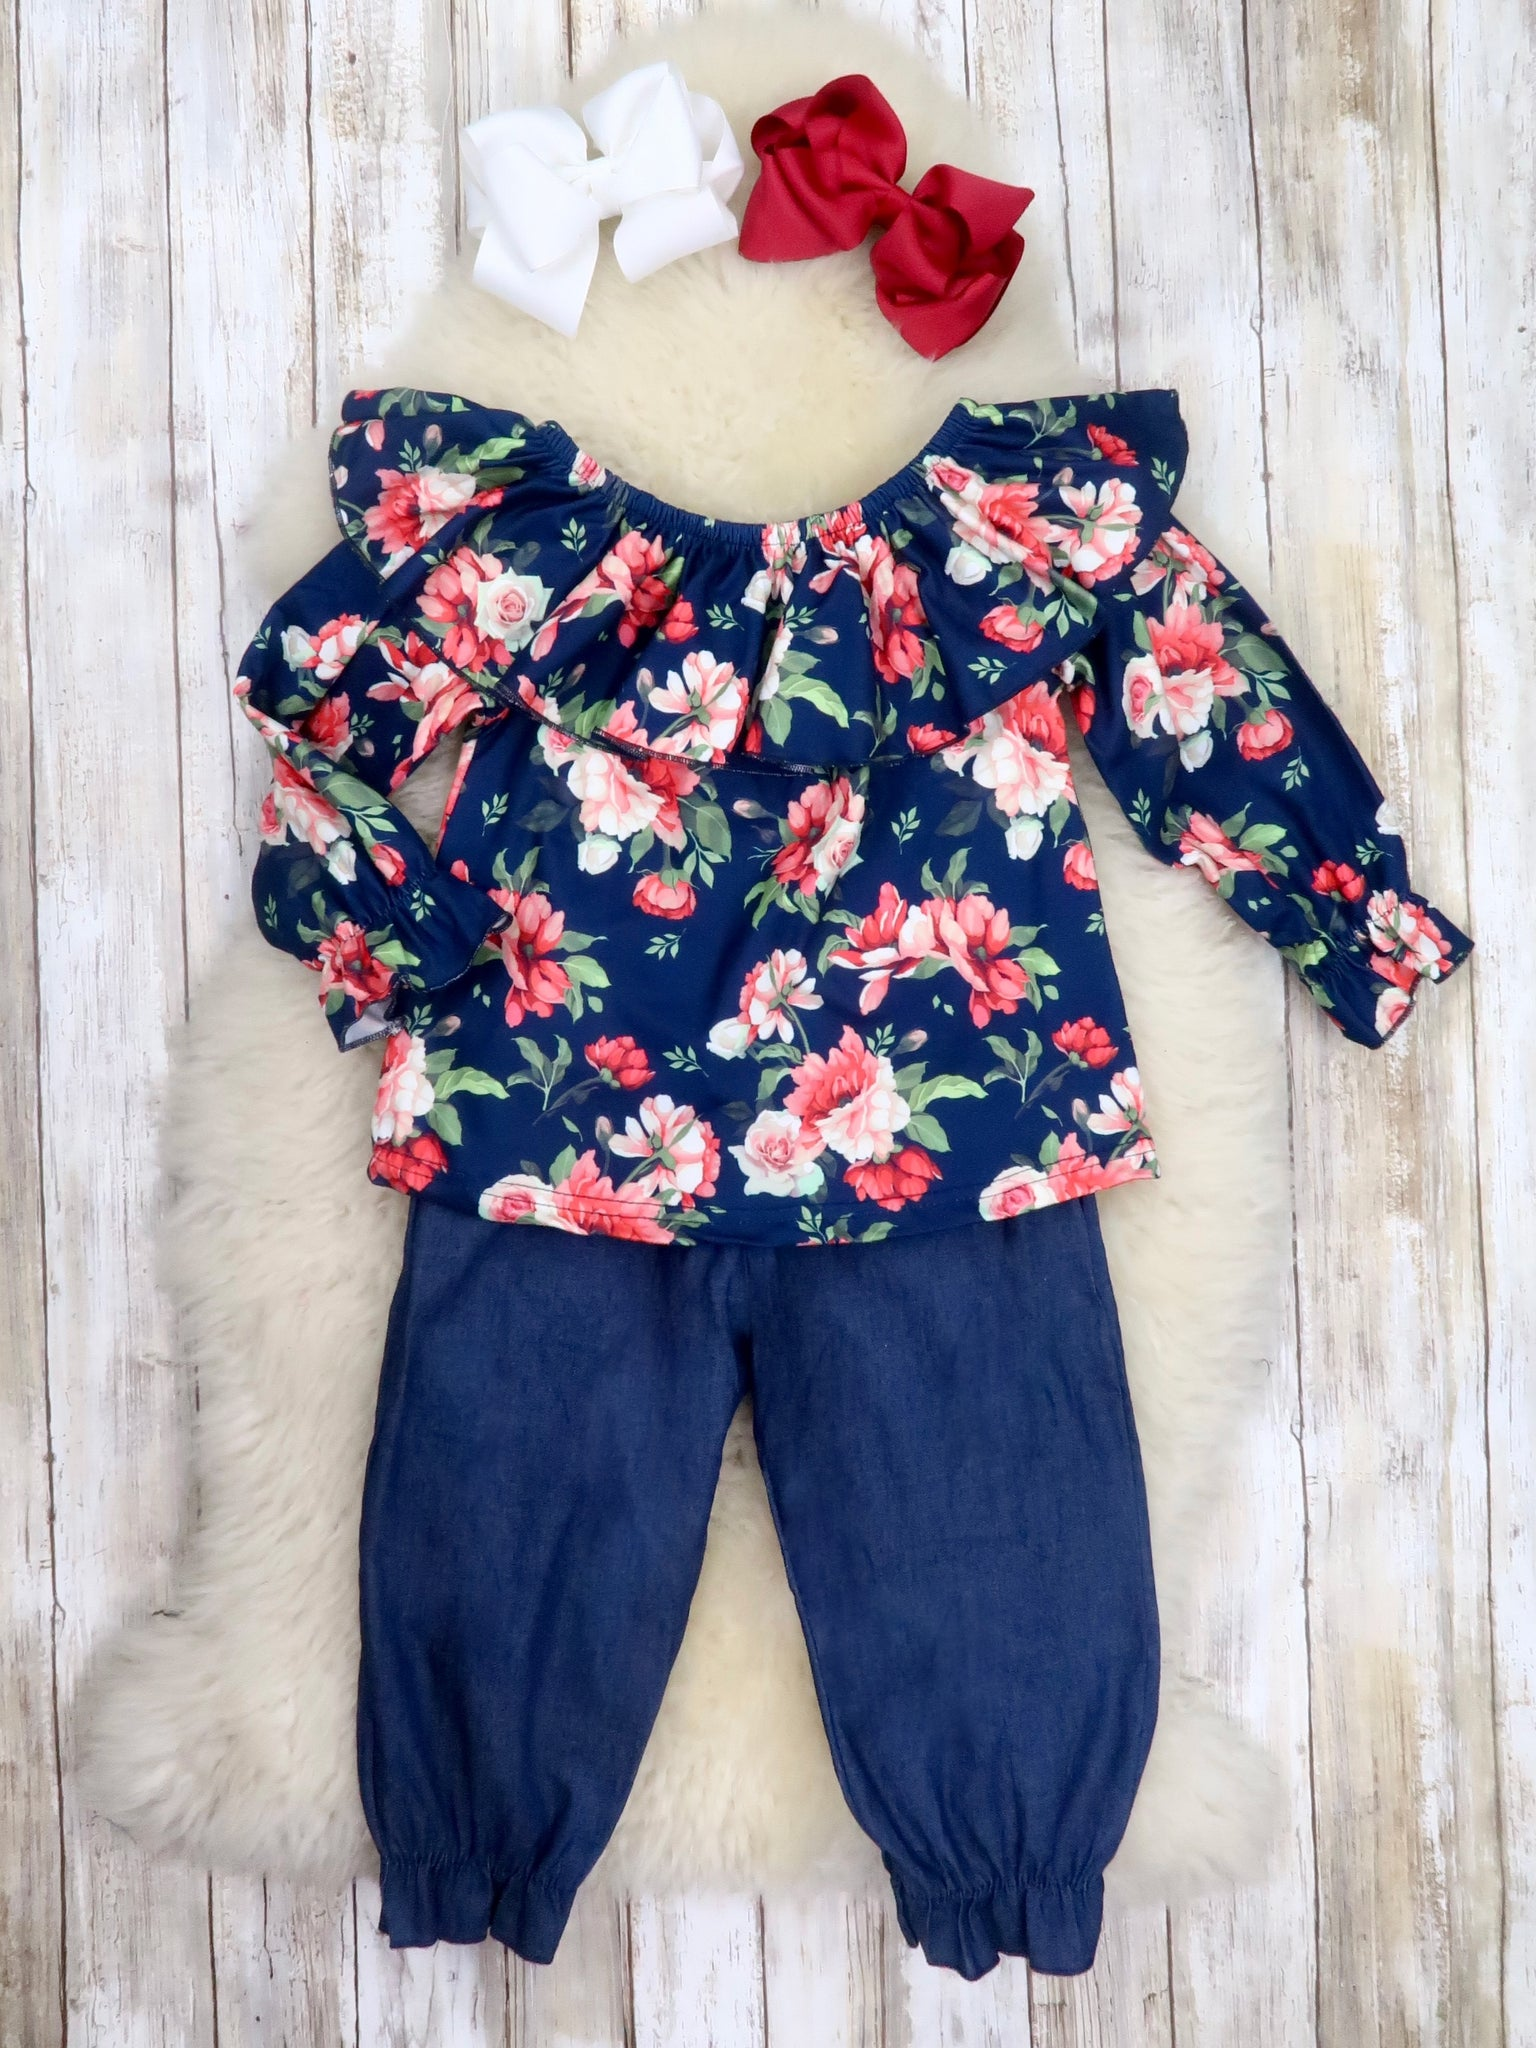 Navy / Pink Floral Ruffle Top & Navy Paper Bag Pants Outfit